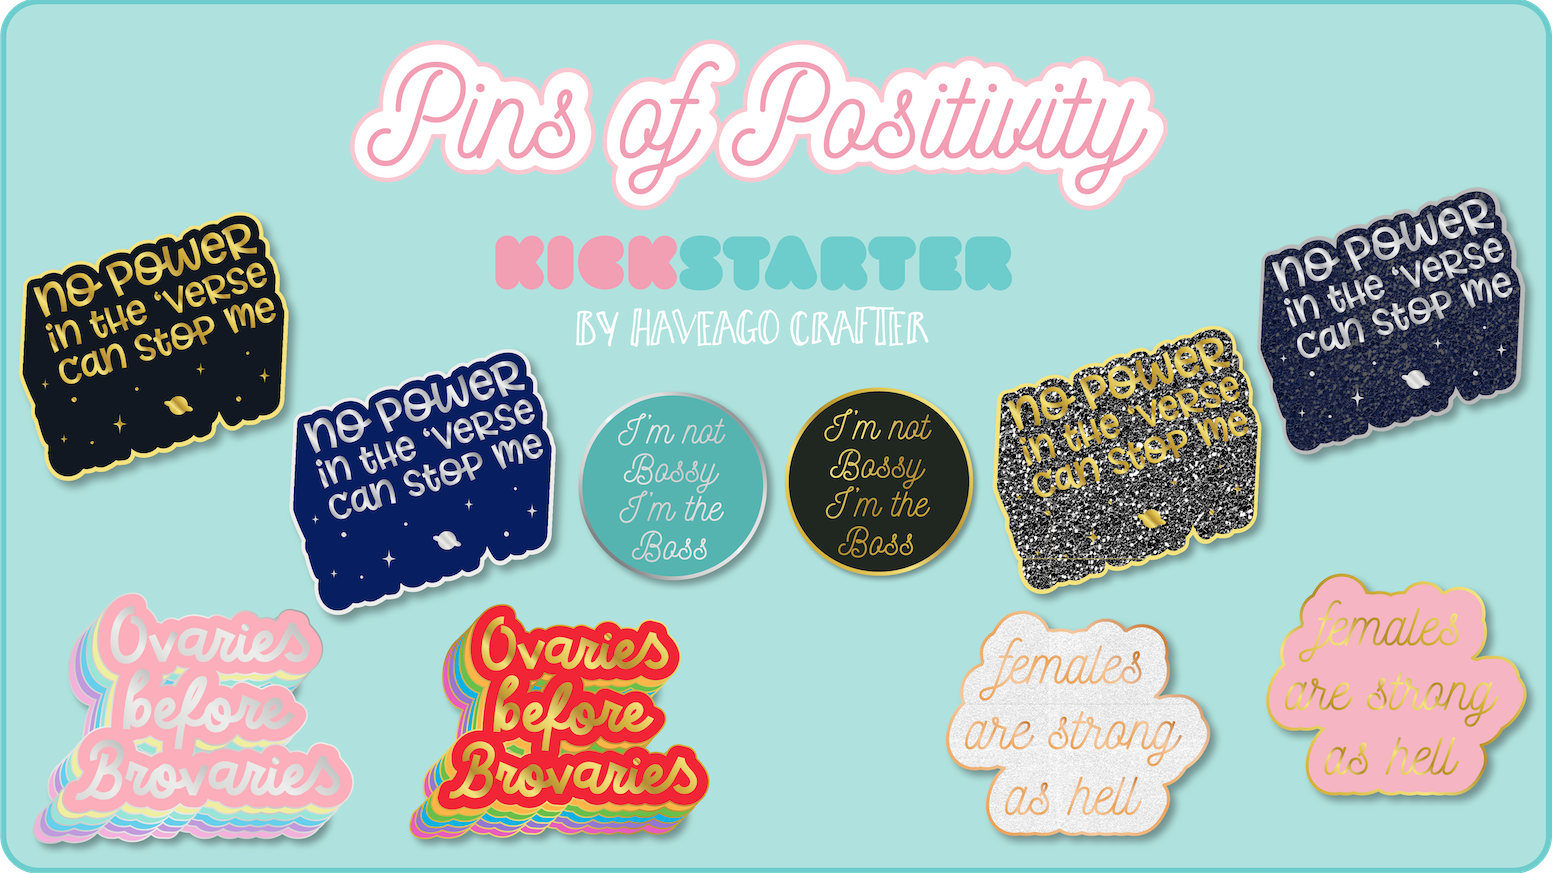 Pins of Positivity - positive quote hard enamel lapel pins by Helen